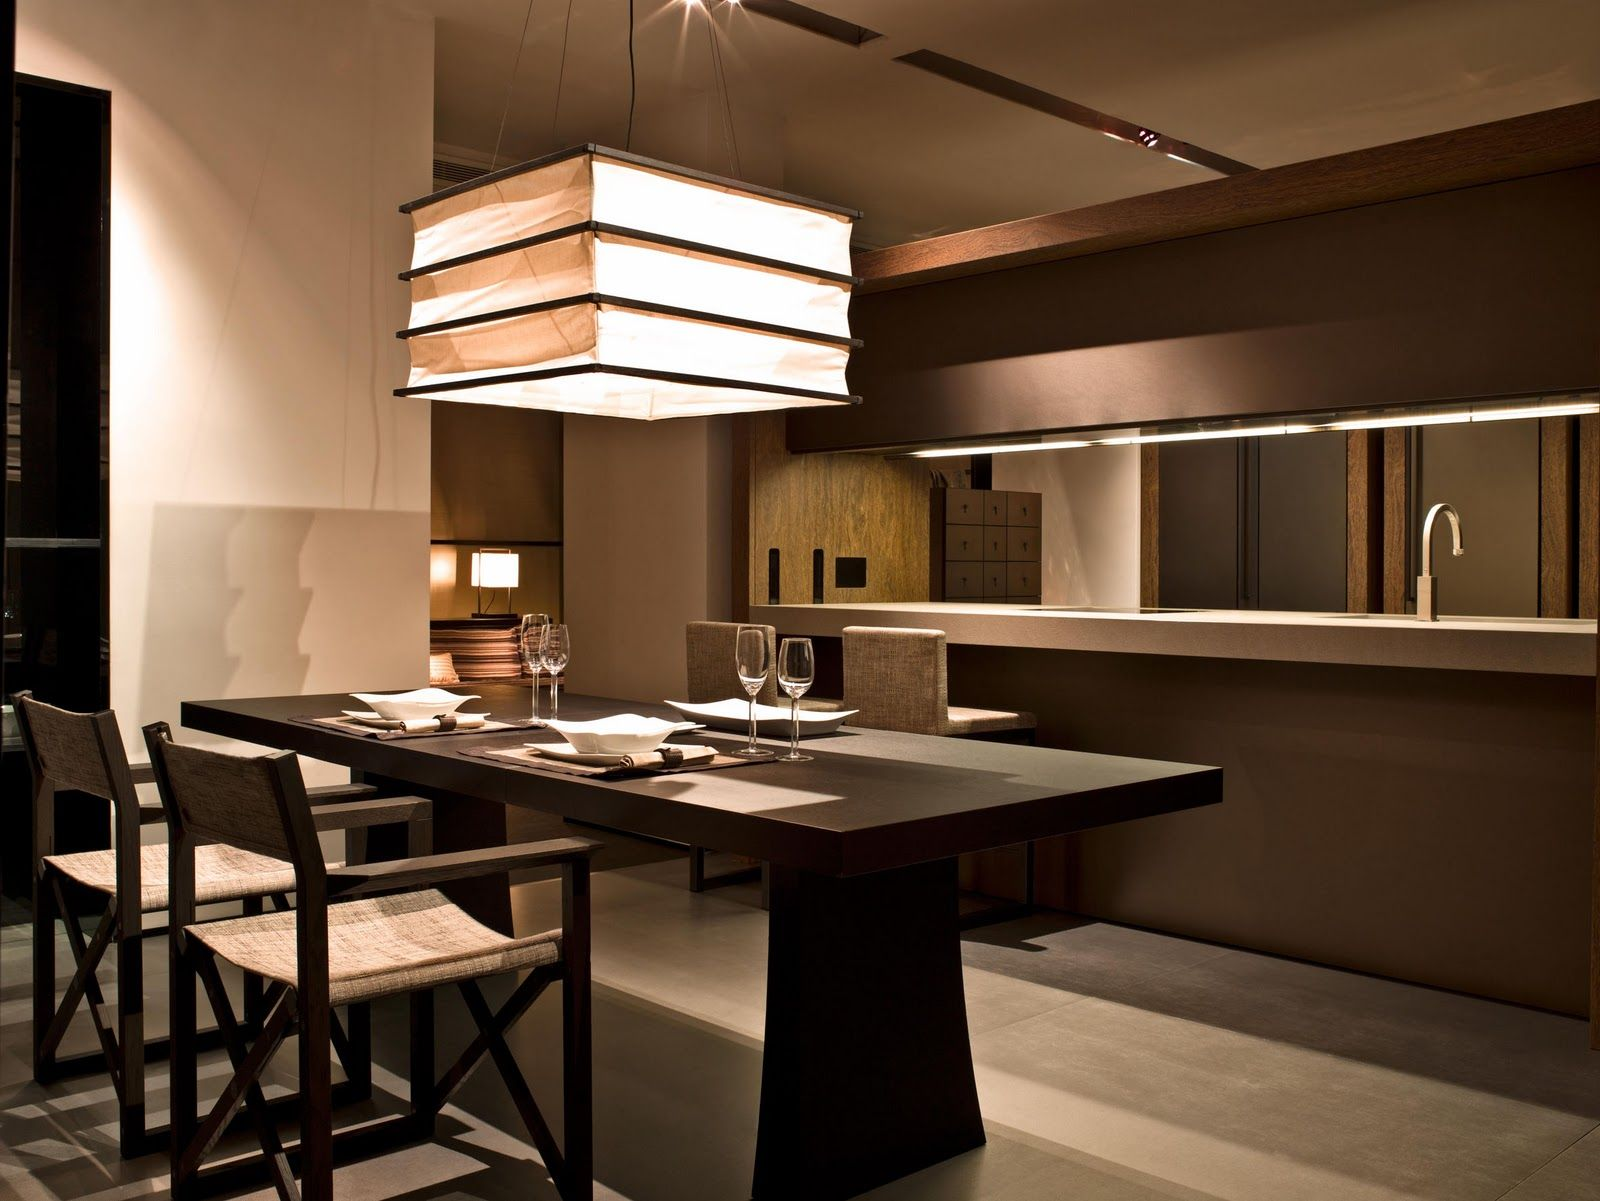 Armani casa kitchen dining the zen pinterest for Interior design for kitchen and dining